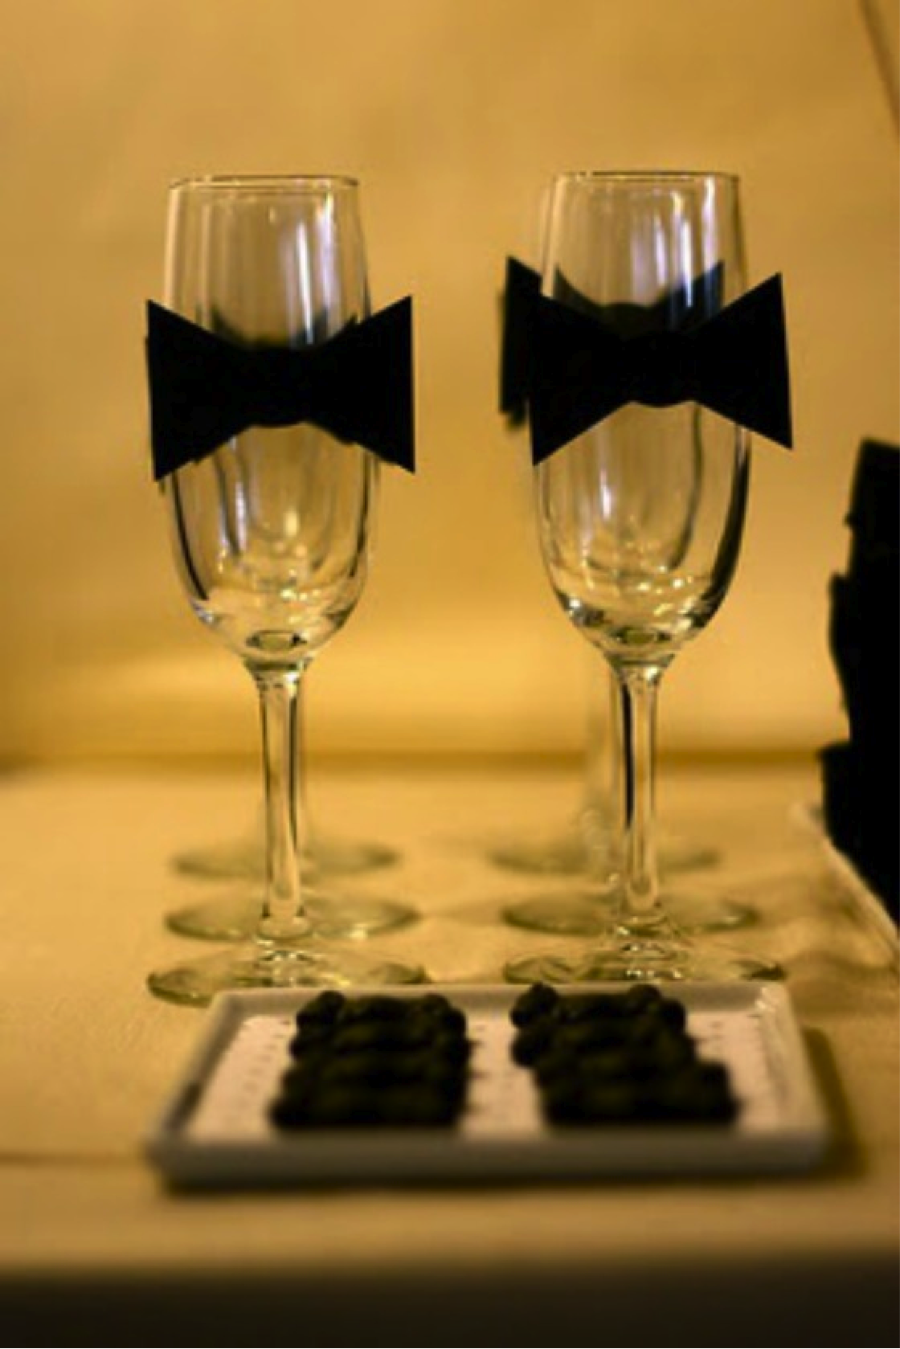 { Via } If you're looking to celebrate in style and have some cocktails like Matthew McConhaughey, Sandra Bullock, and Brad Pitt, put on your DIY hat and make some bow tie champagne glasses.